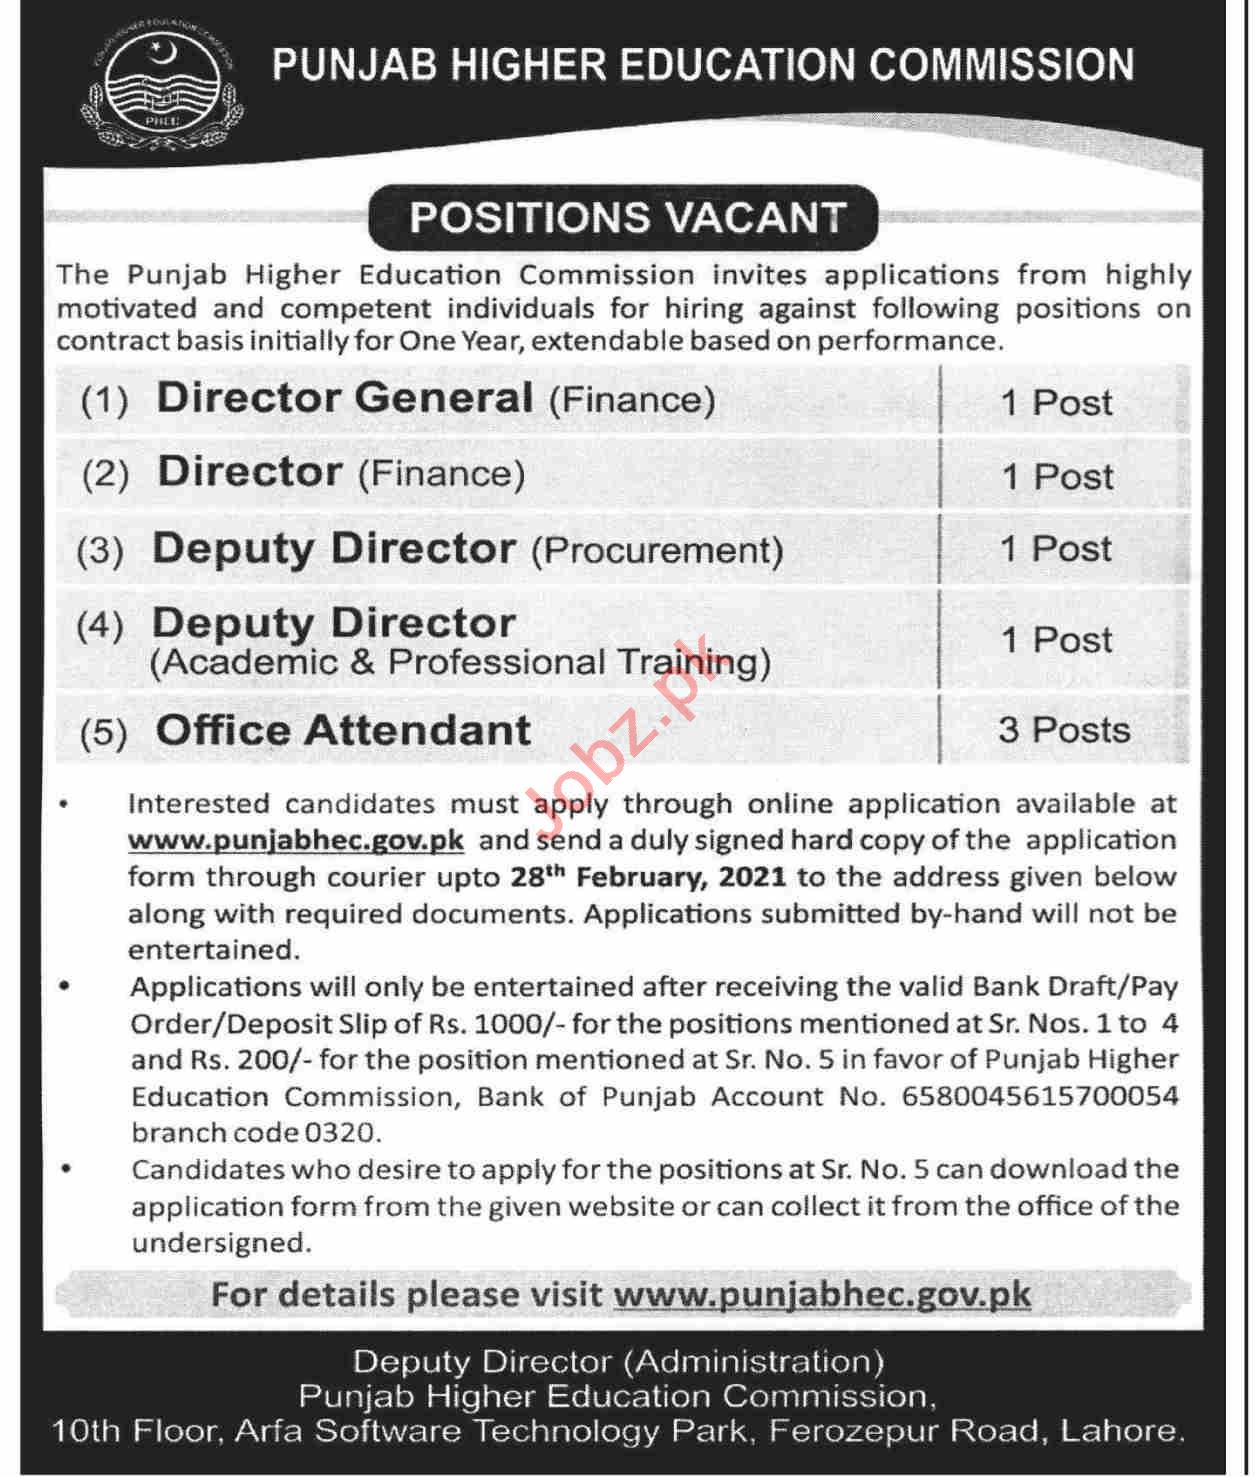 Punjab Higher Education Commission Jobs 2021 for Director